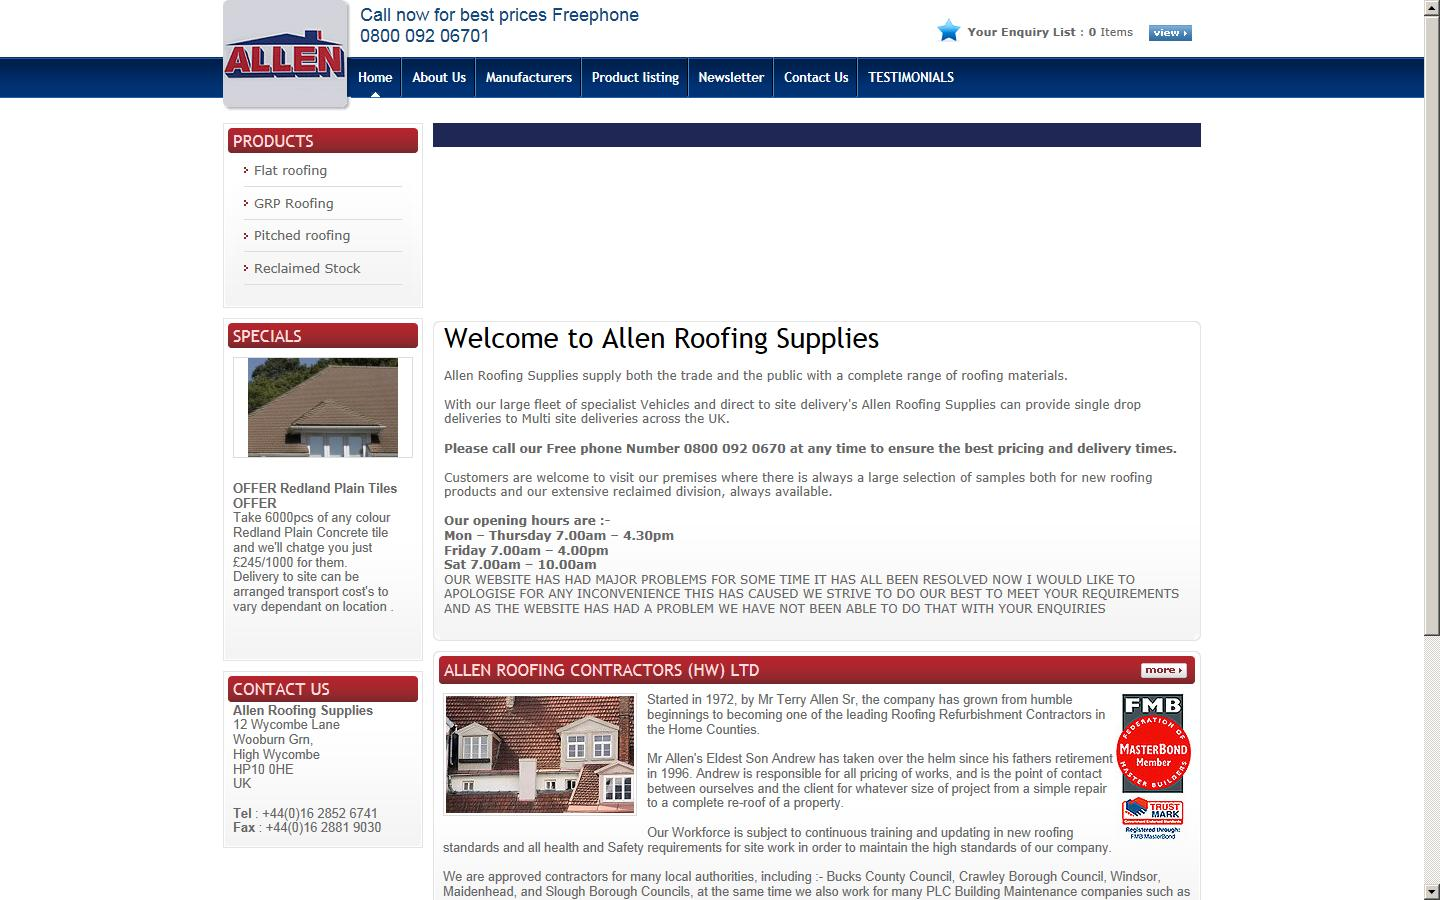 Allen Roofing Supplies Provides Tiling, Slating, Flat Roof U0026 Much  Contracting Services For Domestic U0026 Commercial Sectors In High Wycombe, UK.